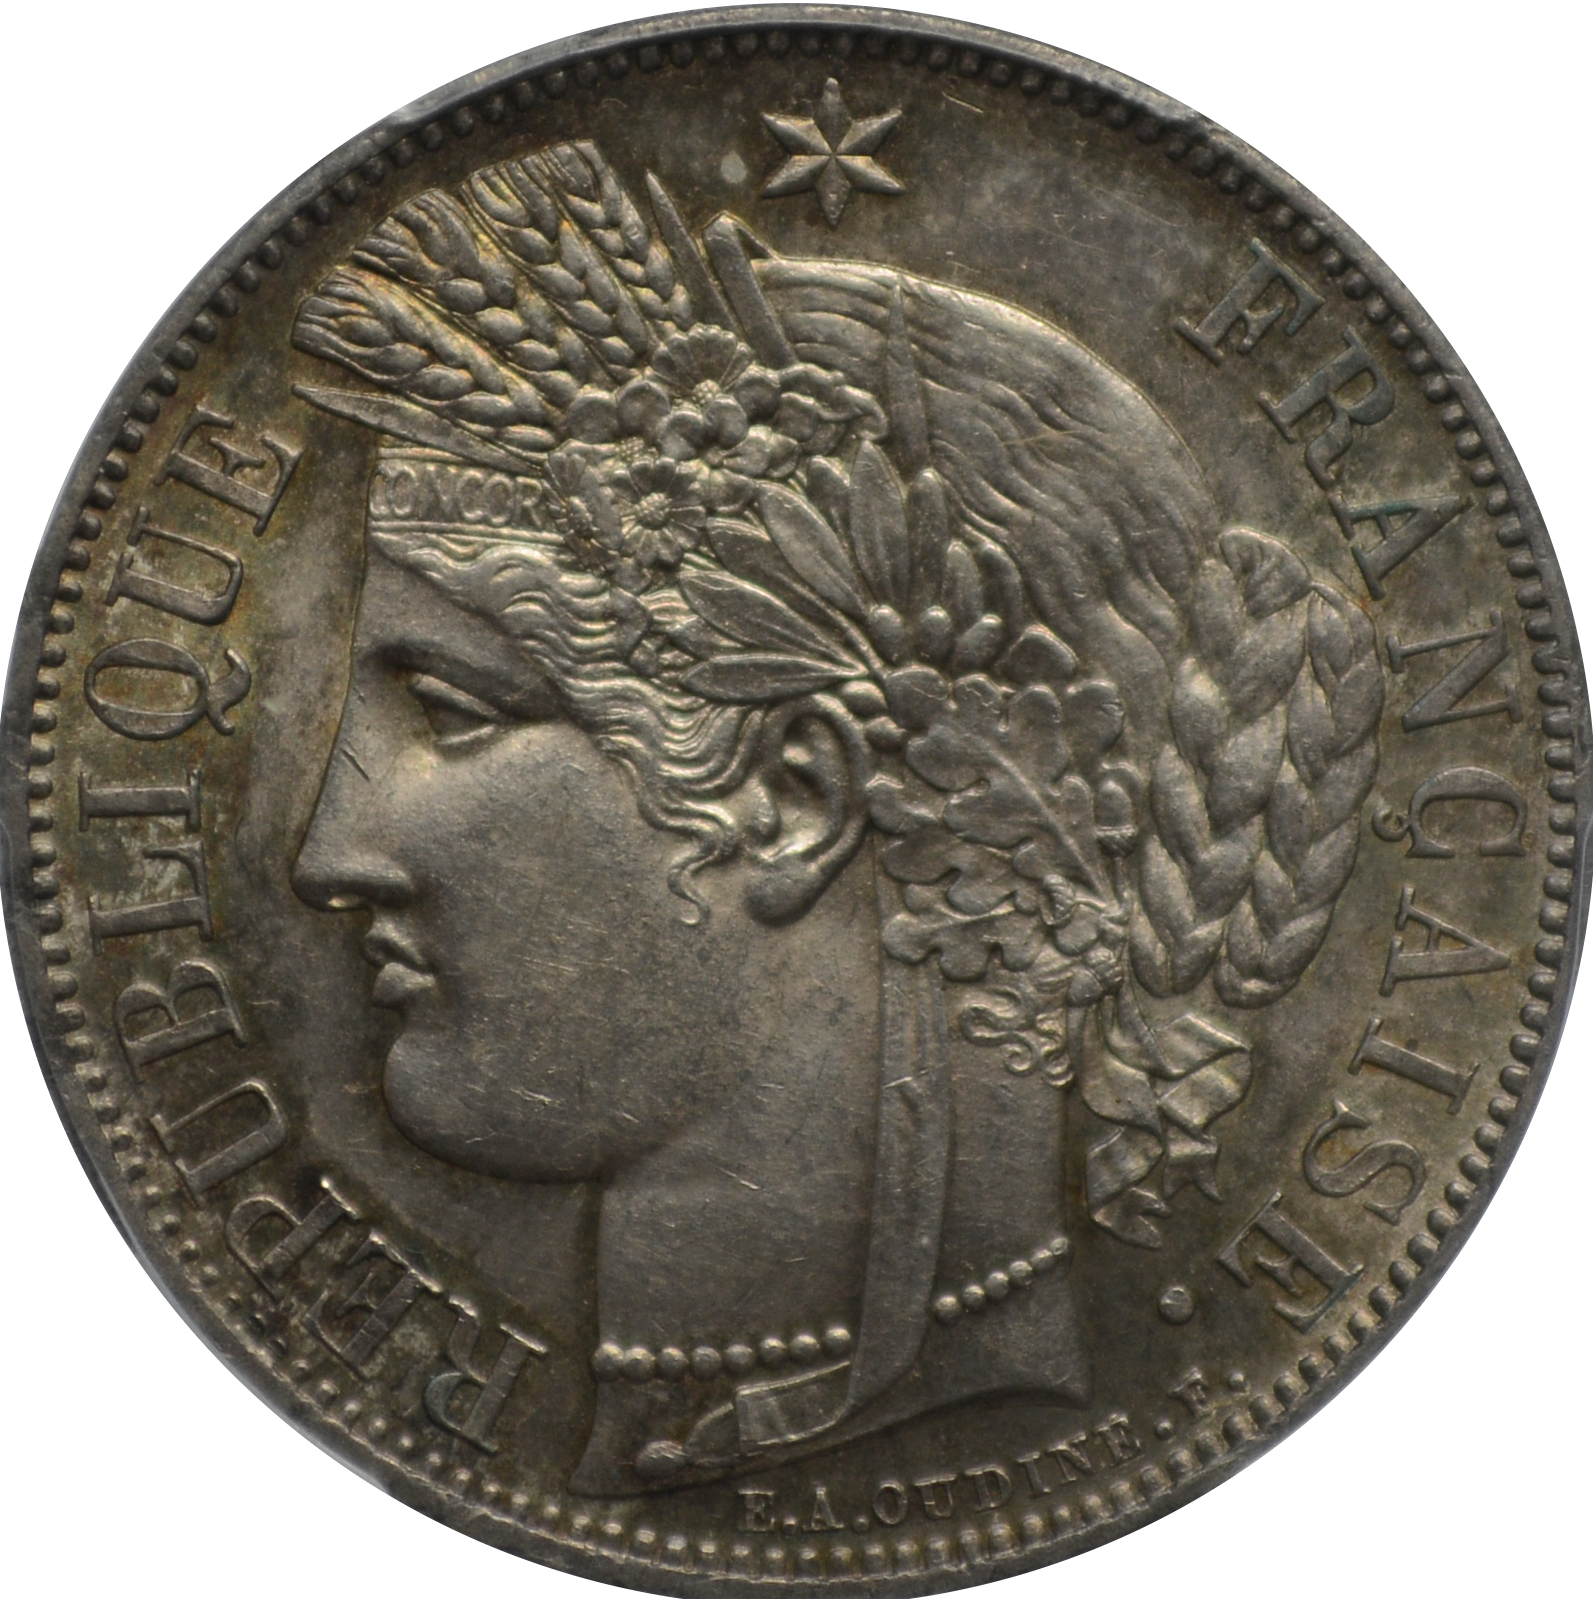 1849 5 francs coin value